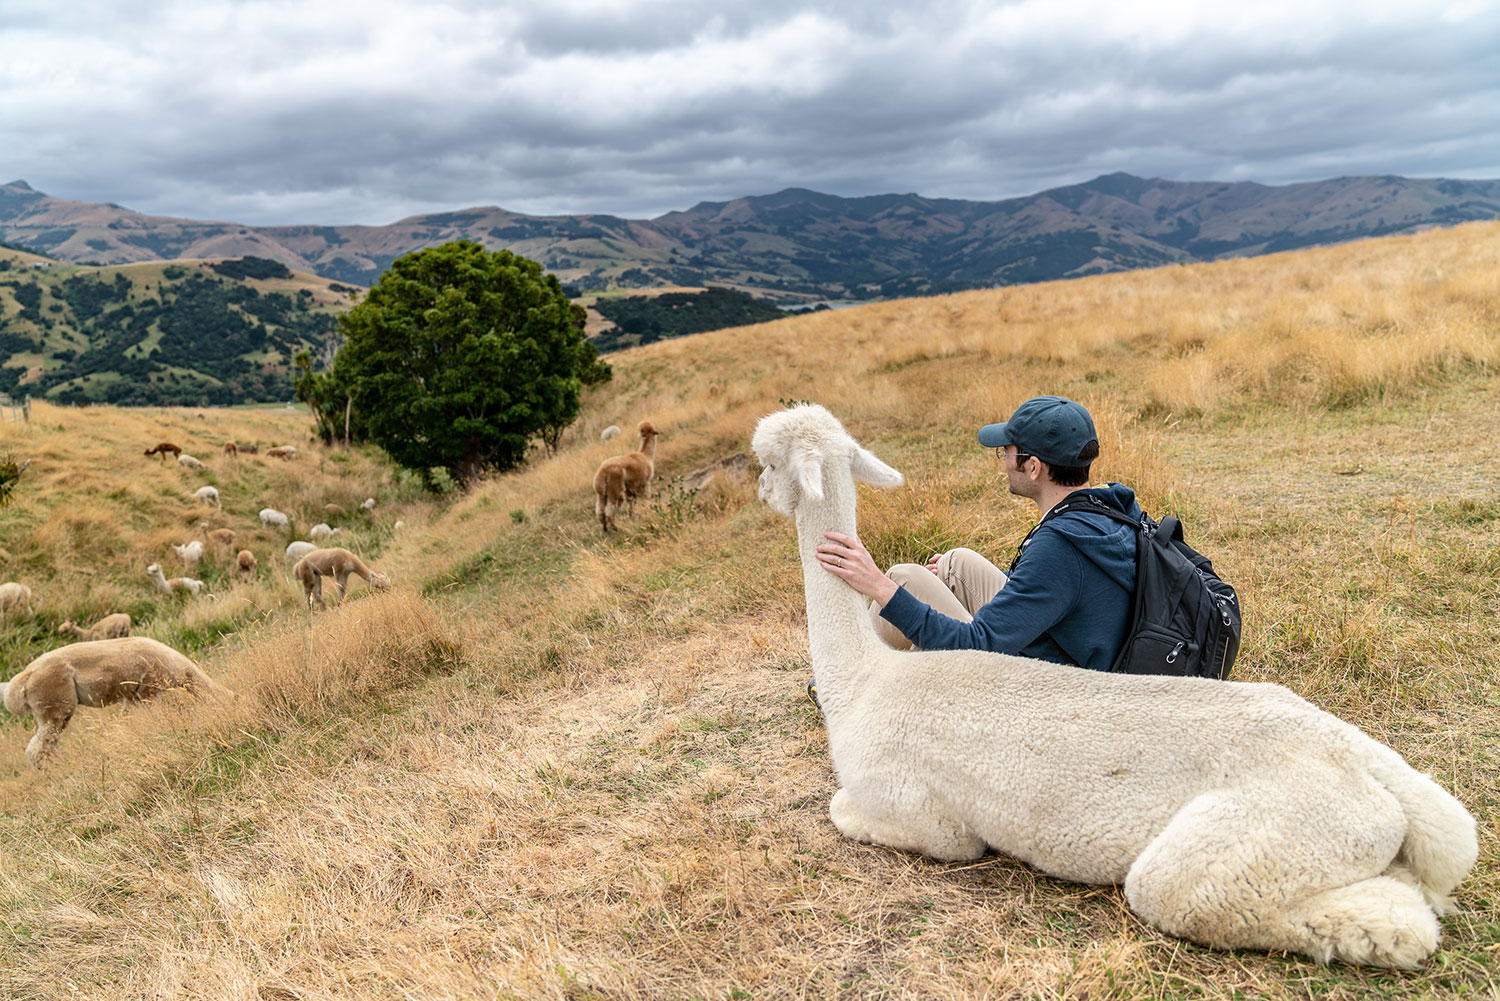 Marcus and alpaca at Shamarra Alpaca Farm in Akaroa, New Zealand